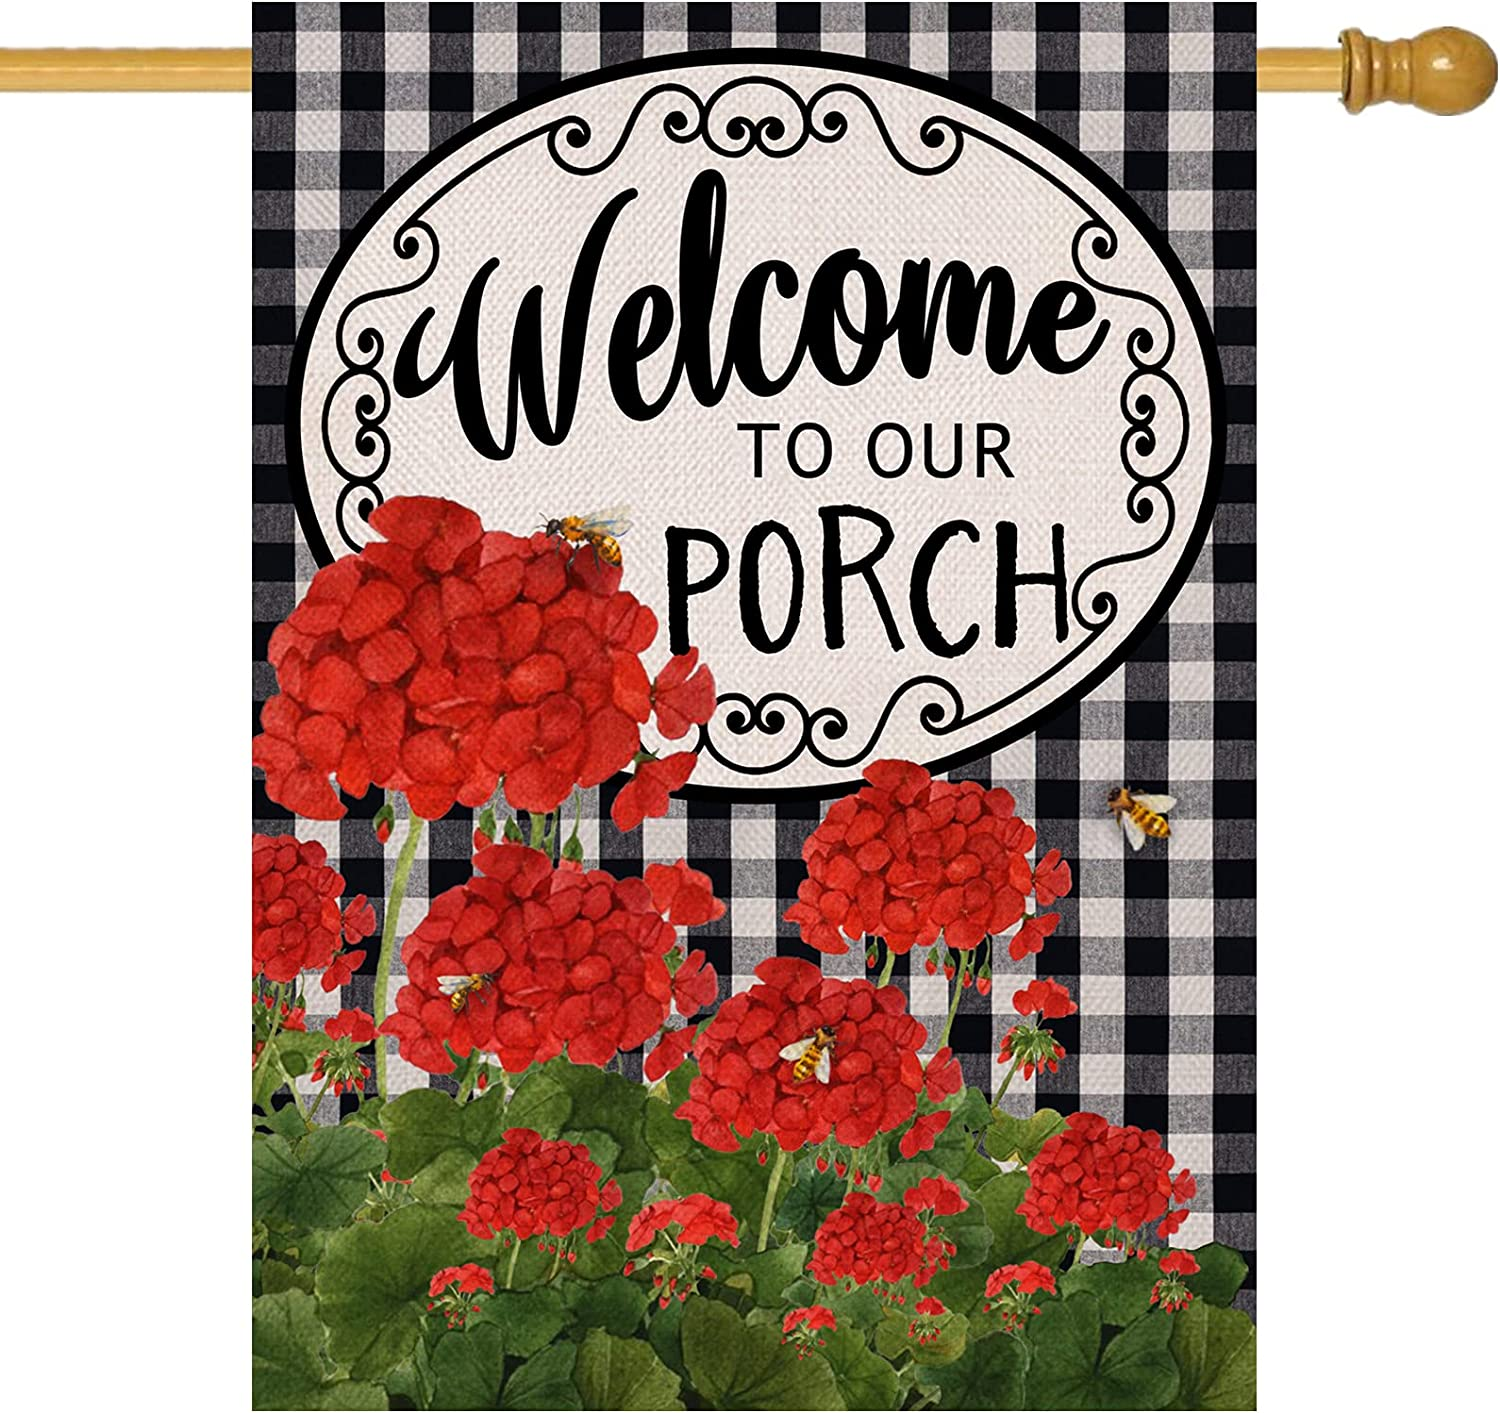 Covido Home Decorative Welcome to Our Porch Summer Fall House Flag, Buffalo Plaid Check Garden Yard Geranium Flower Outside Decoration, Autumn Farmhouse Outdoor Large Spring Decor Double Sided 28 x 40